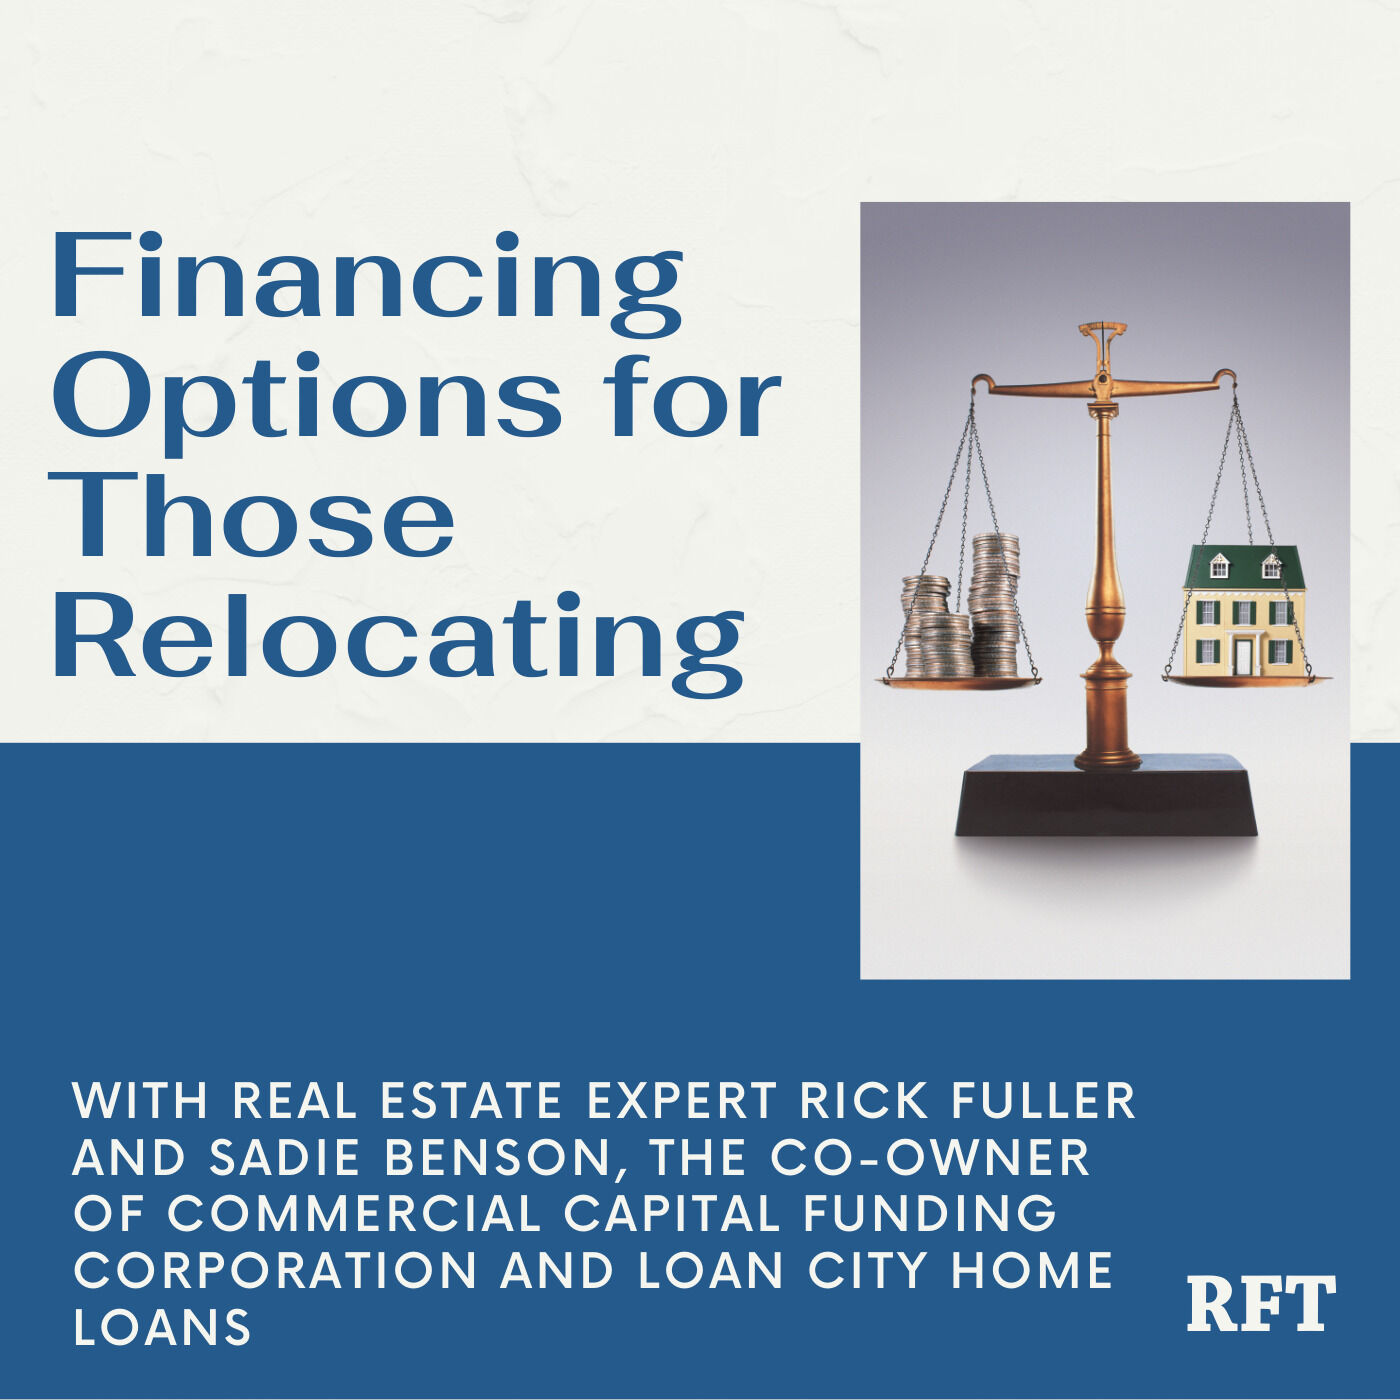 Financing Options for Those Relocating